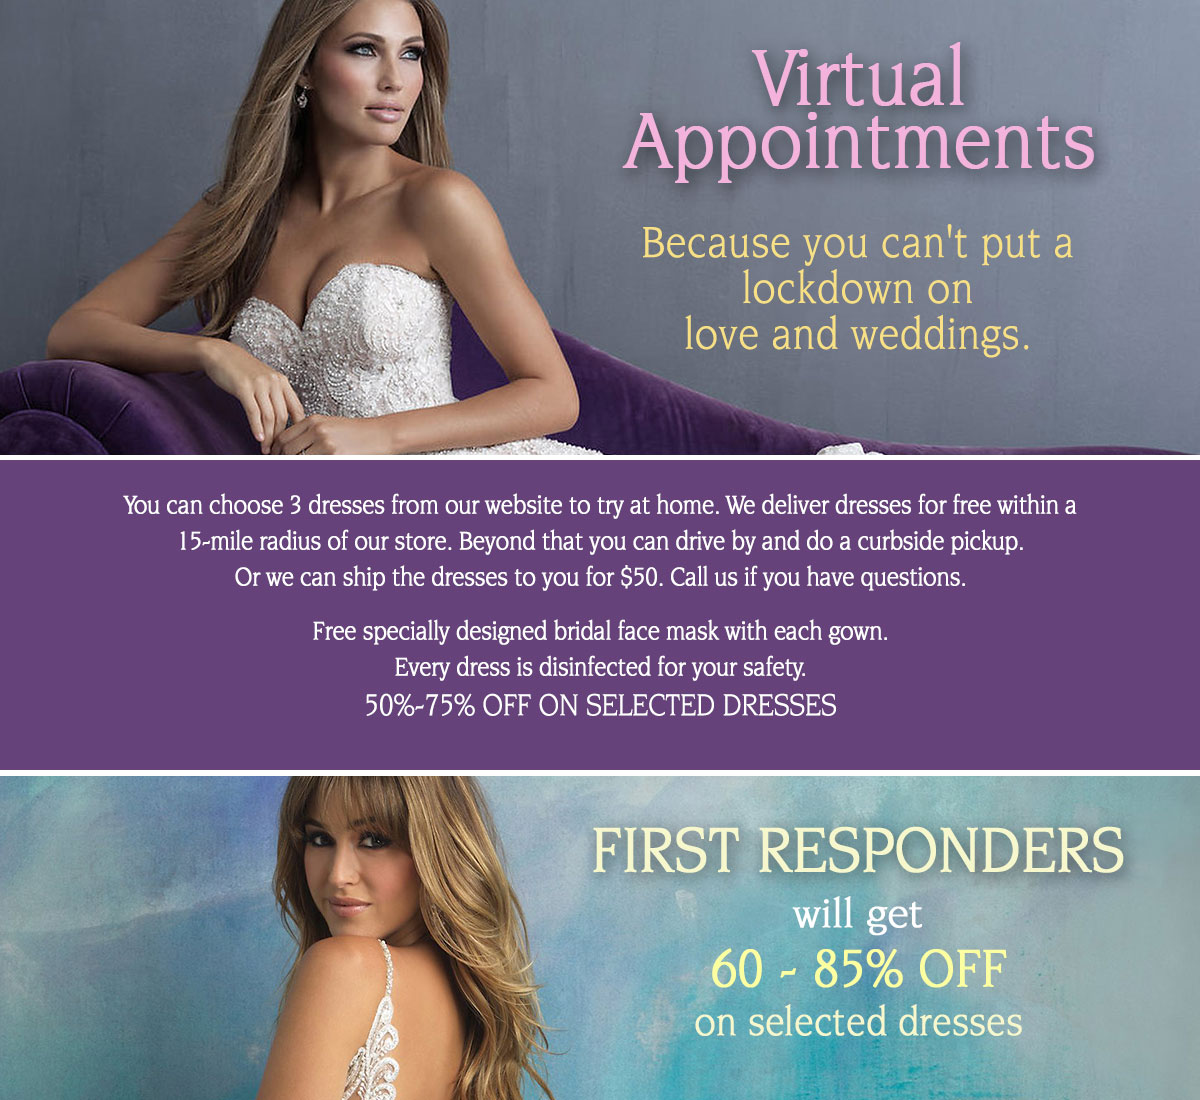 virtual appointments/covid-19 banner ad